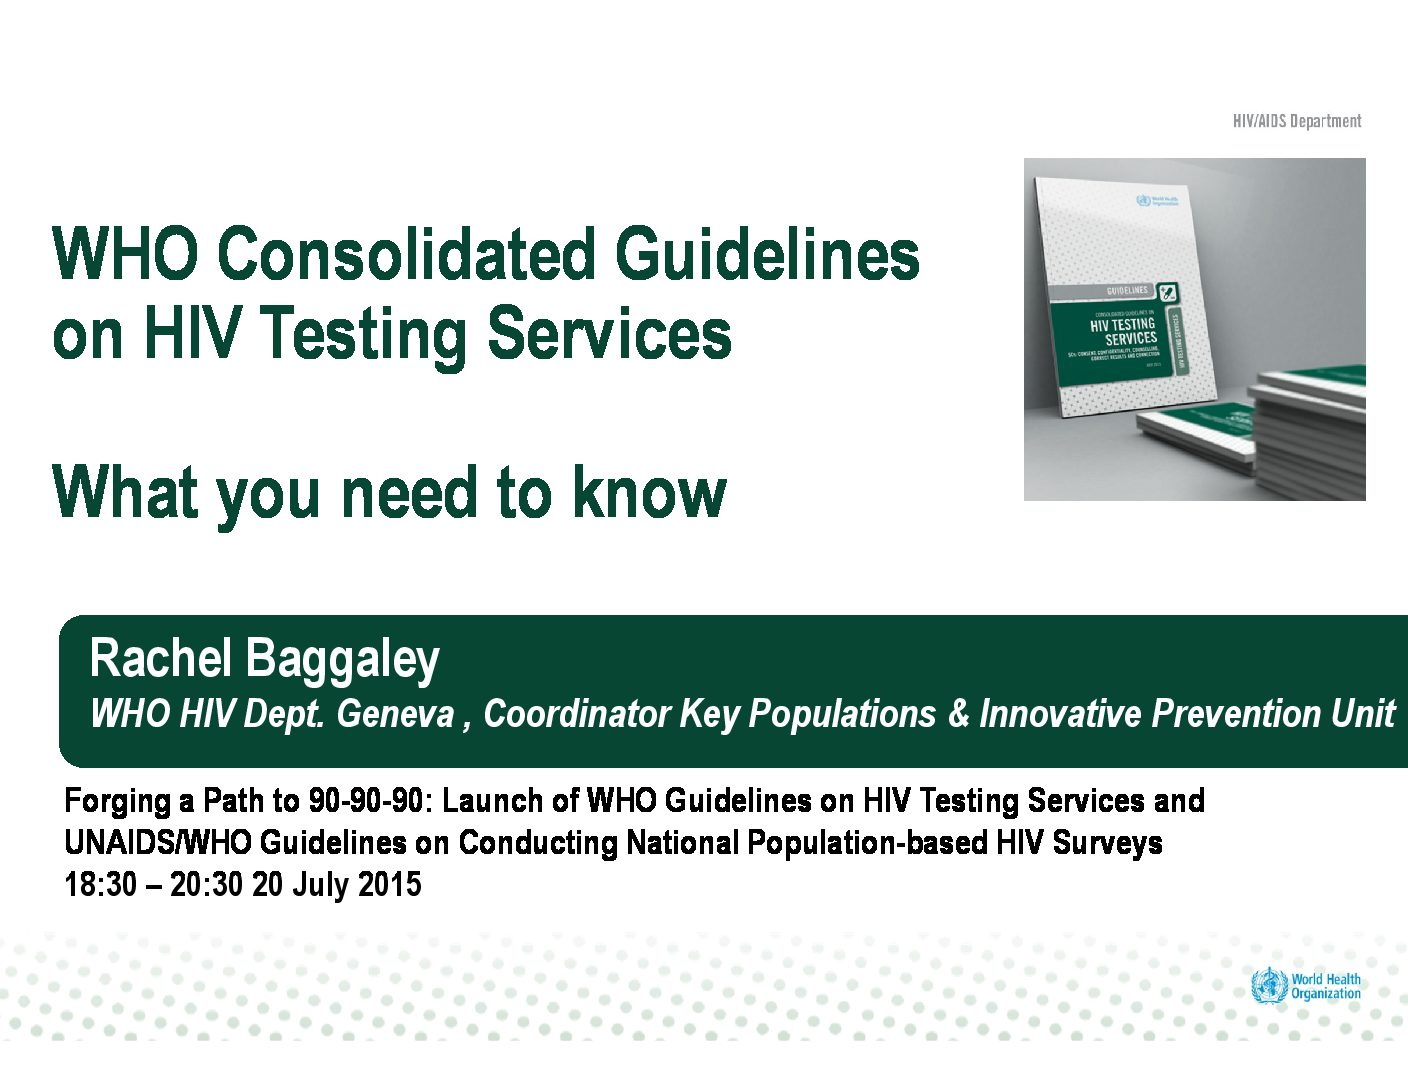 WHO consolidated guidelines on HIV testing services. What you need to know.